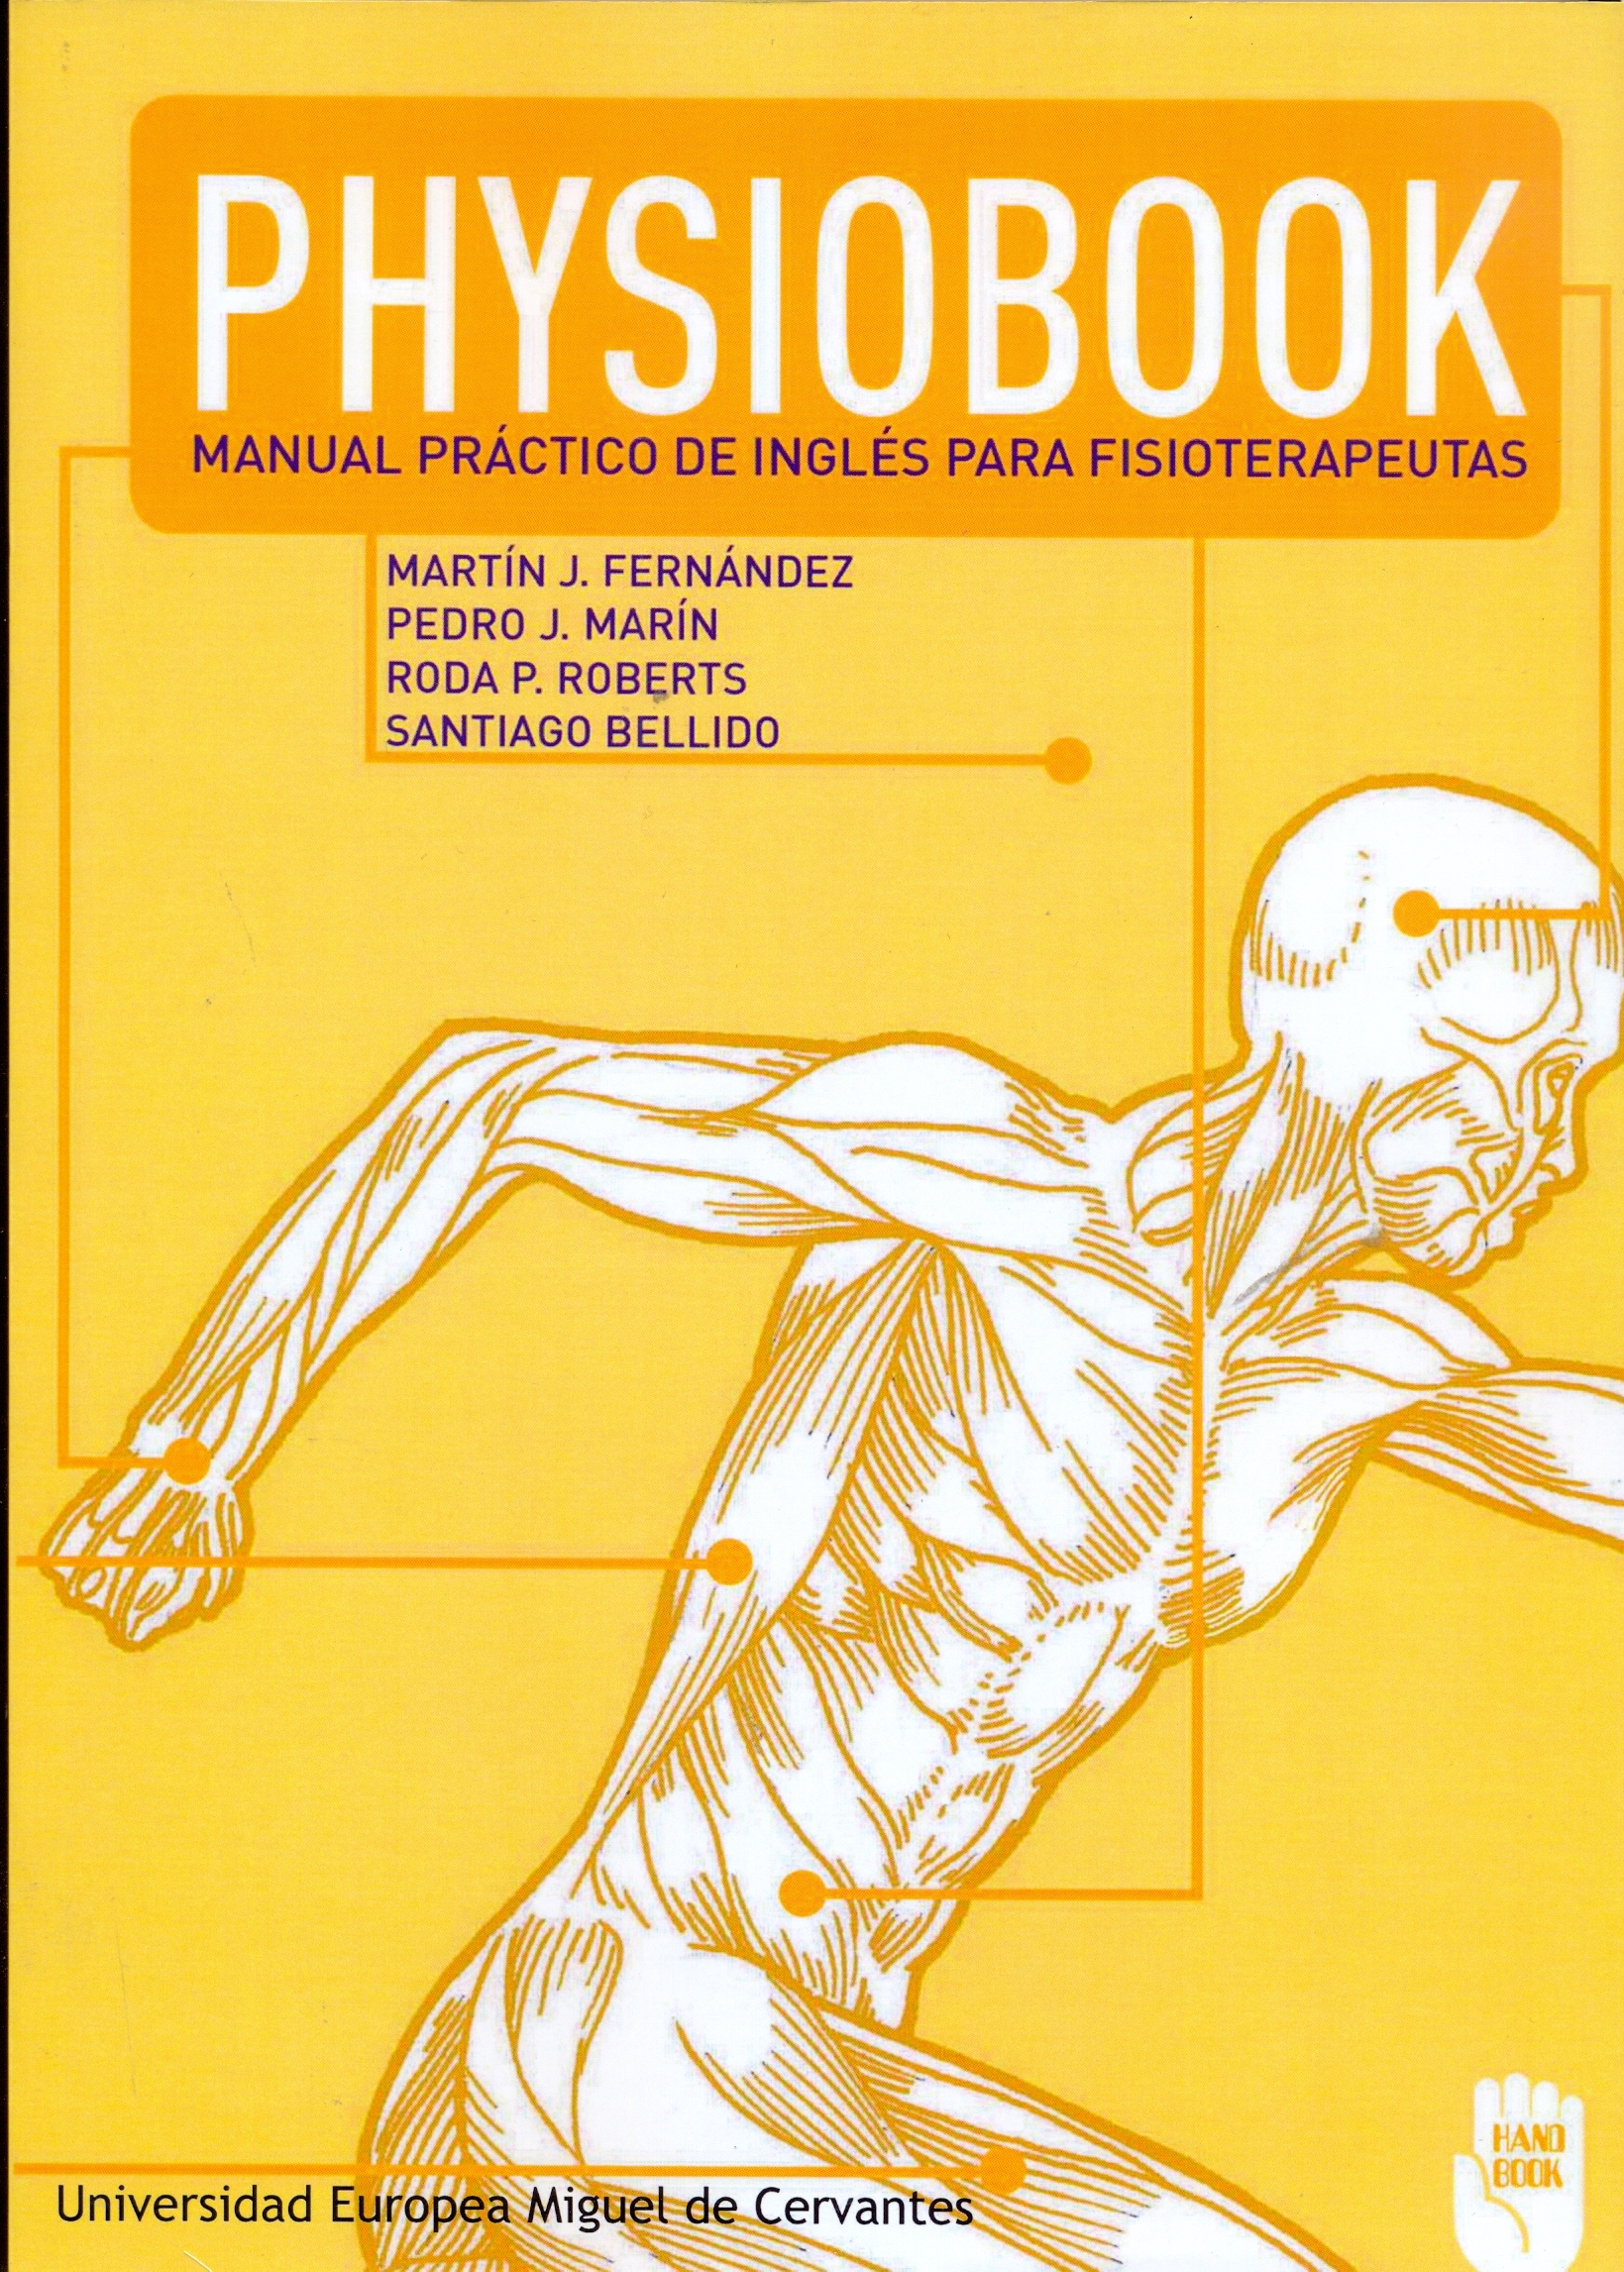 PHYSIOBOOK. MANUAL PRACTICO DE INGLES PARA FISIOTERAPEUTAS